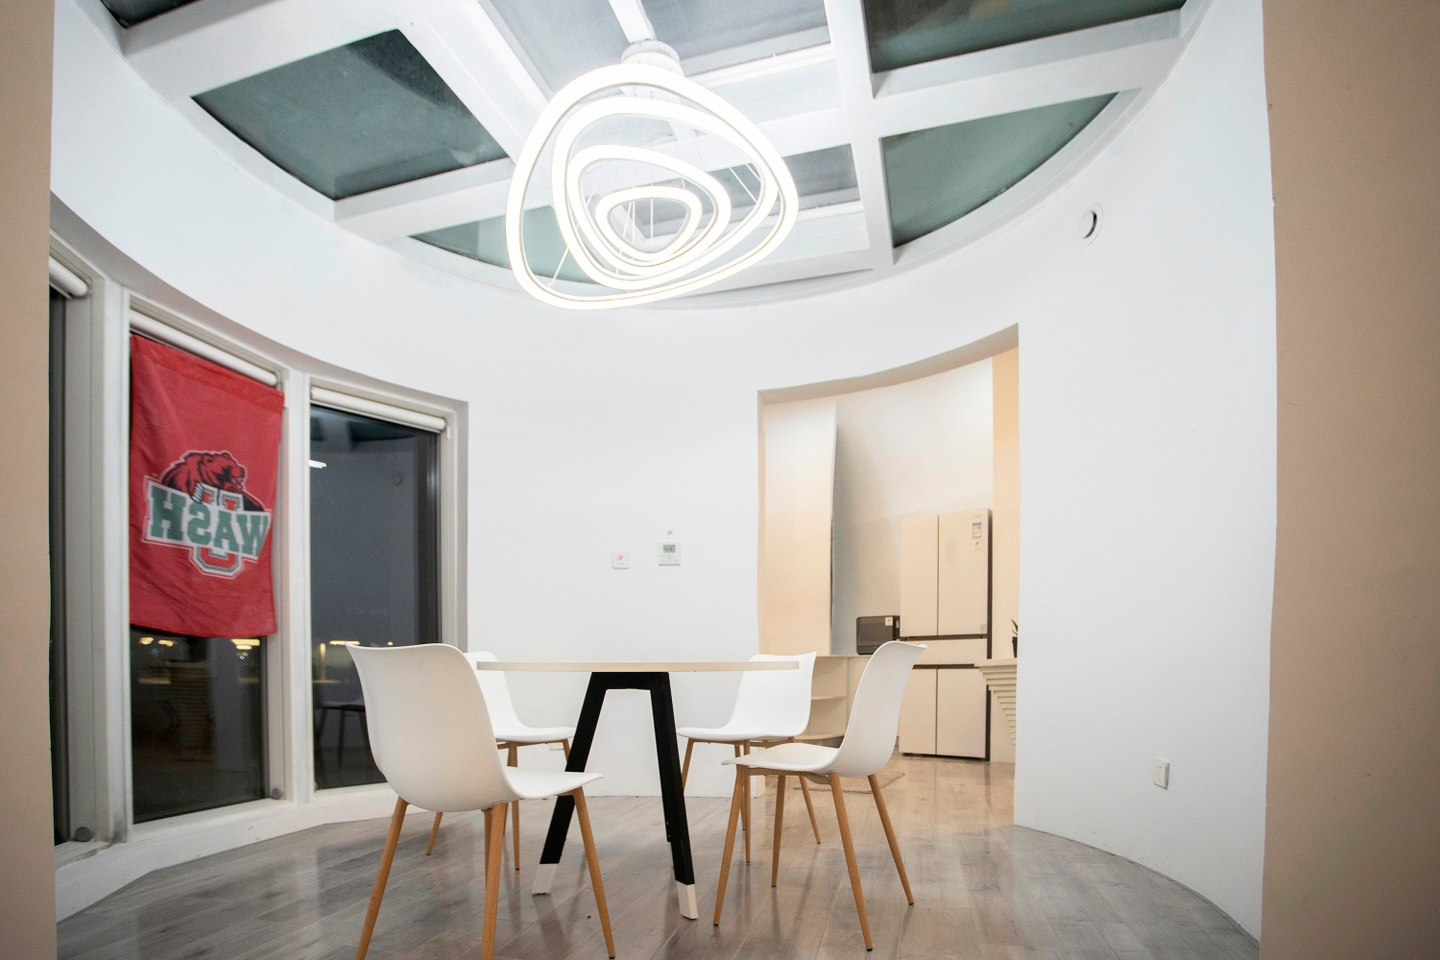 Interior of the house. White walls are curved; the left side of the room features three tall windos. In the center is a table with four white chairs with wooden legs. Overhead is a bright white light composed of irregulrarly shaped rings.